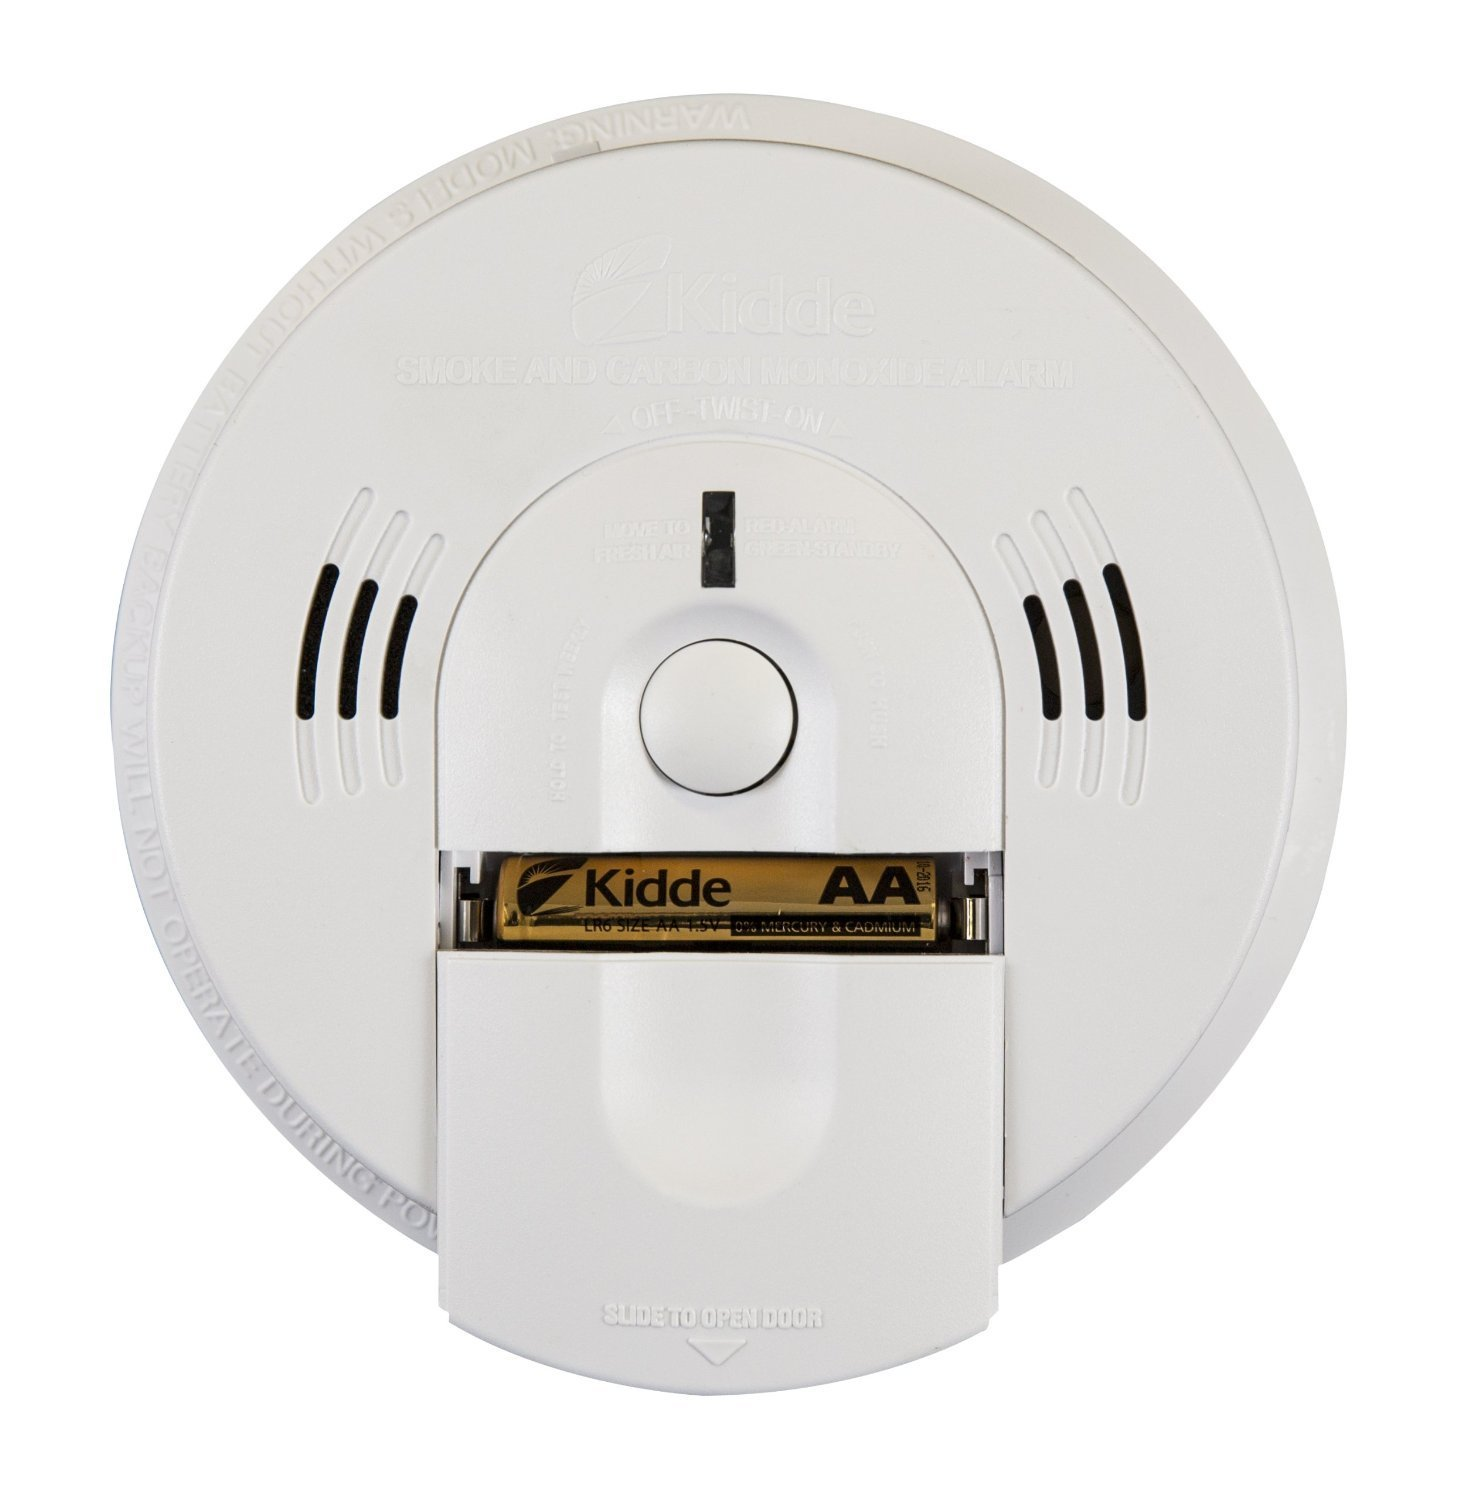 Kidde Smoke and Carbon Monoxide Detector Alarm with Voice Warning | Hardwired w/Battery Backup | Interconnectable | Model # KN-COSM-IBA by Kidde